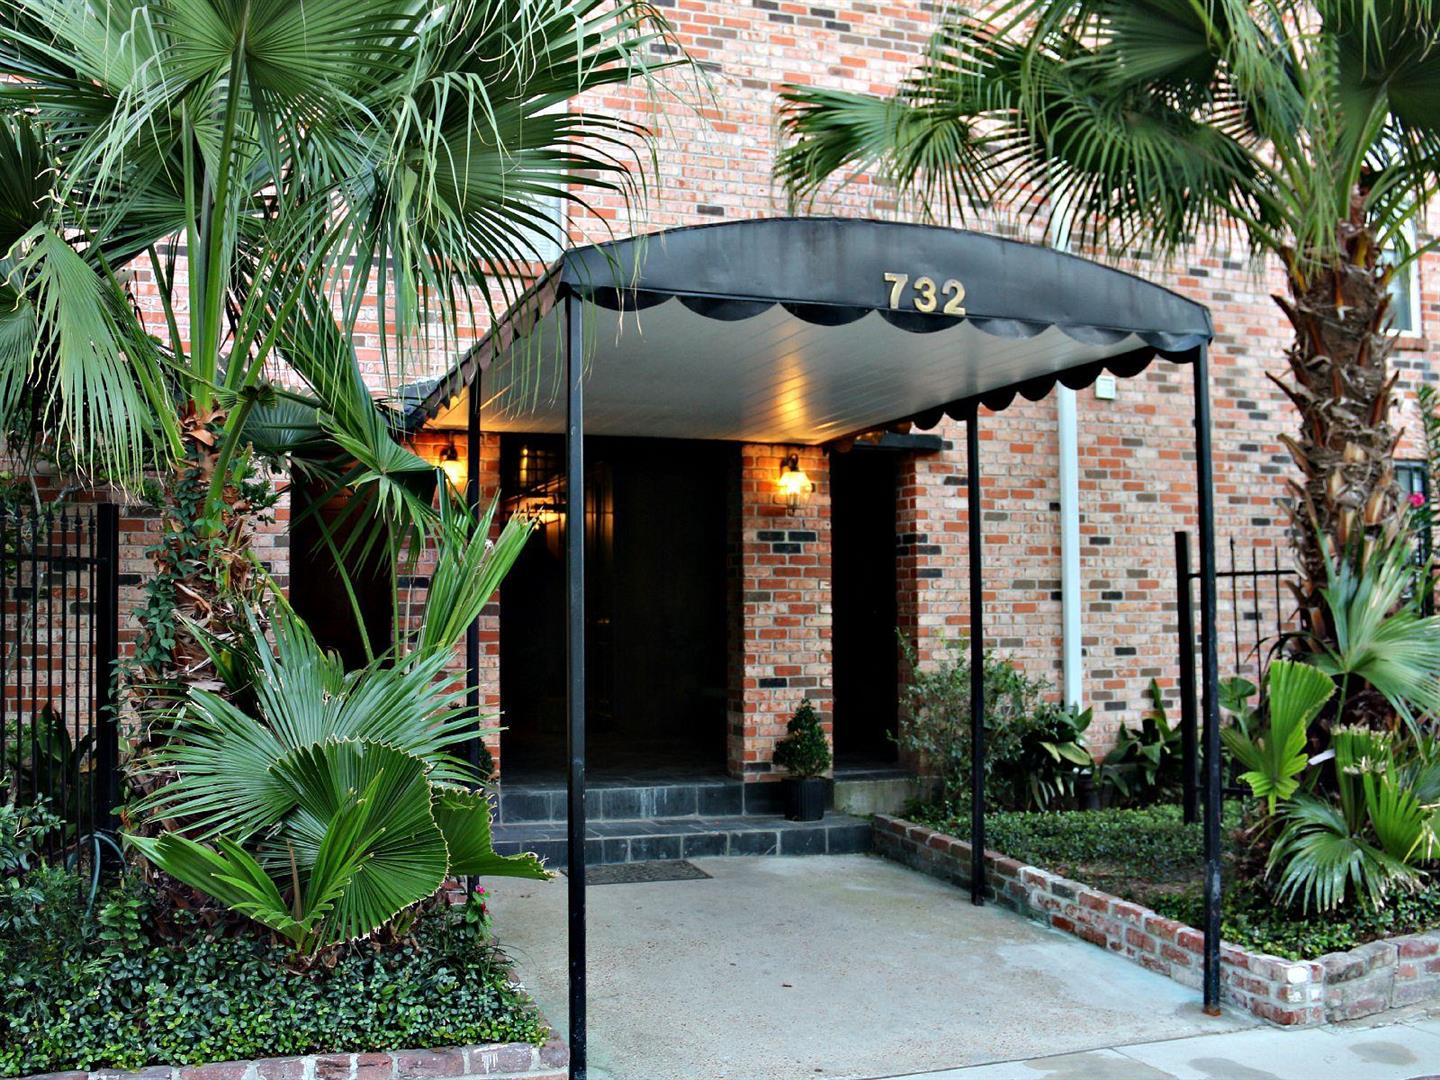 732CherokeeCondos,Entrance.jpg